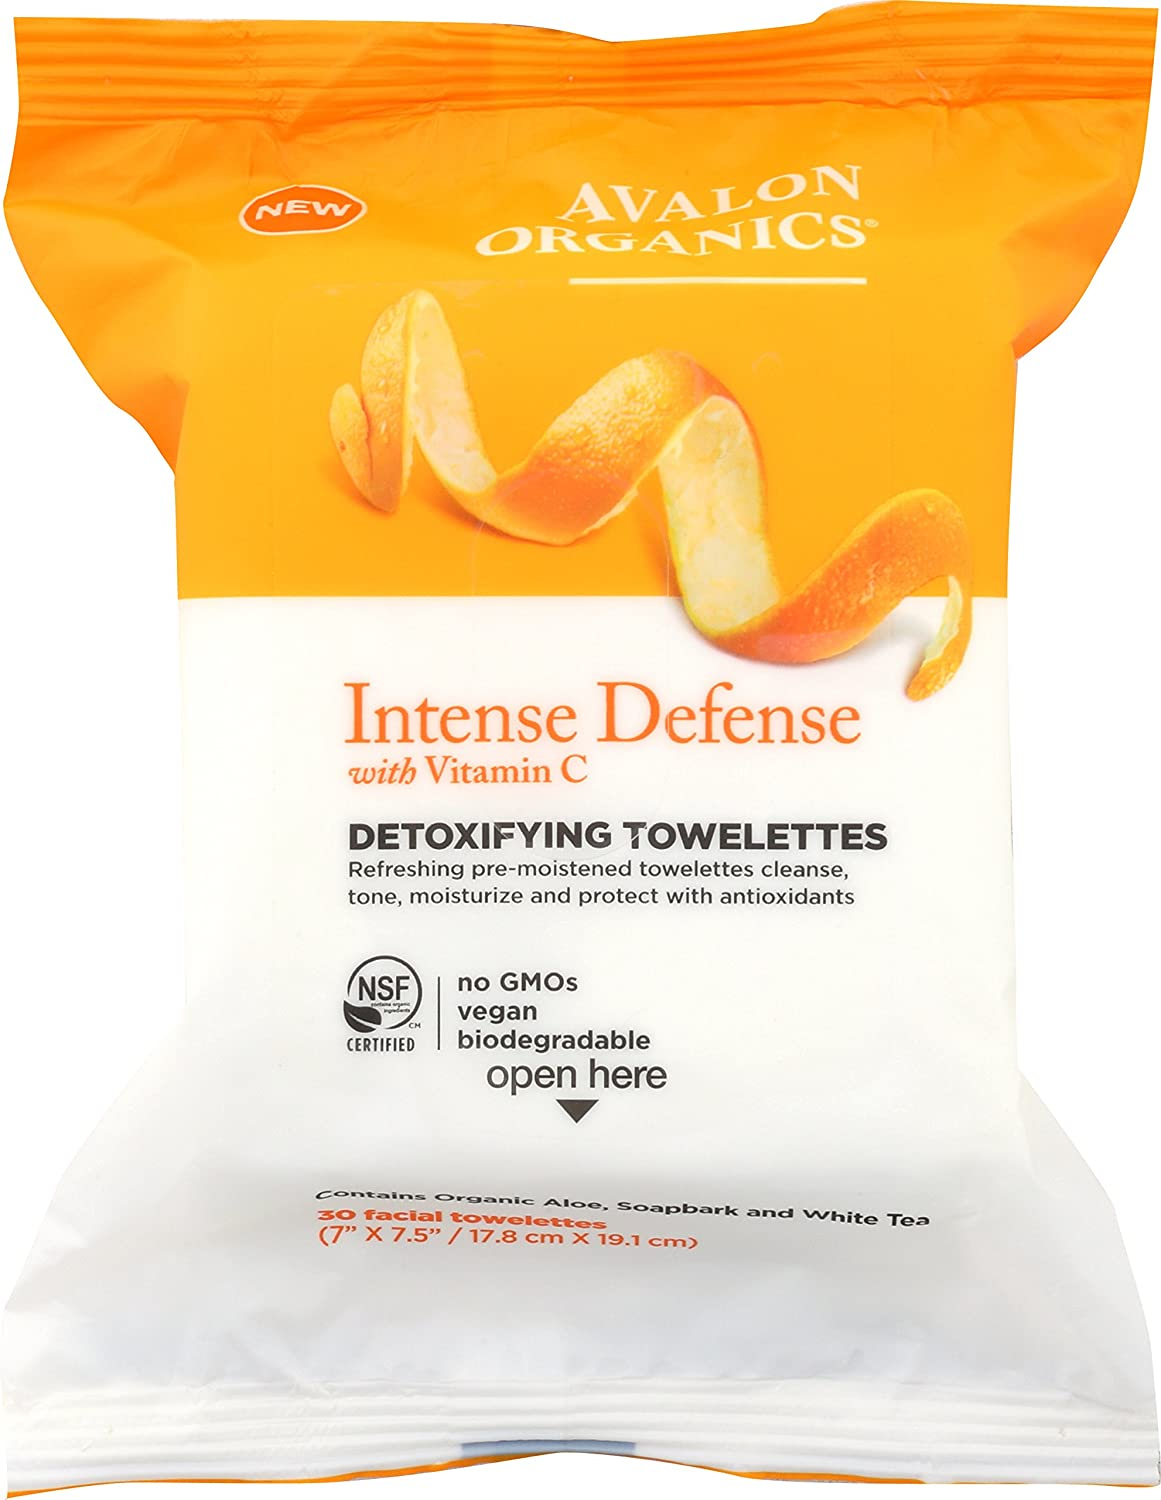 Avalon Organics Intense Defense Vitamin C Detoxifying Towelettes, 30 Facial Towelettes, 1 Count